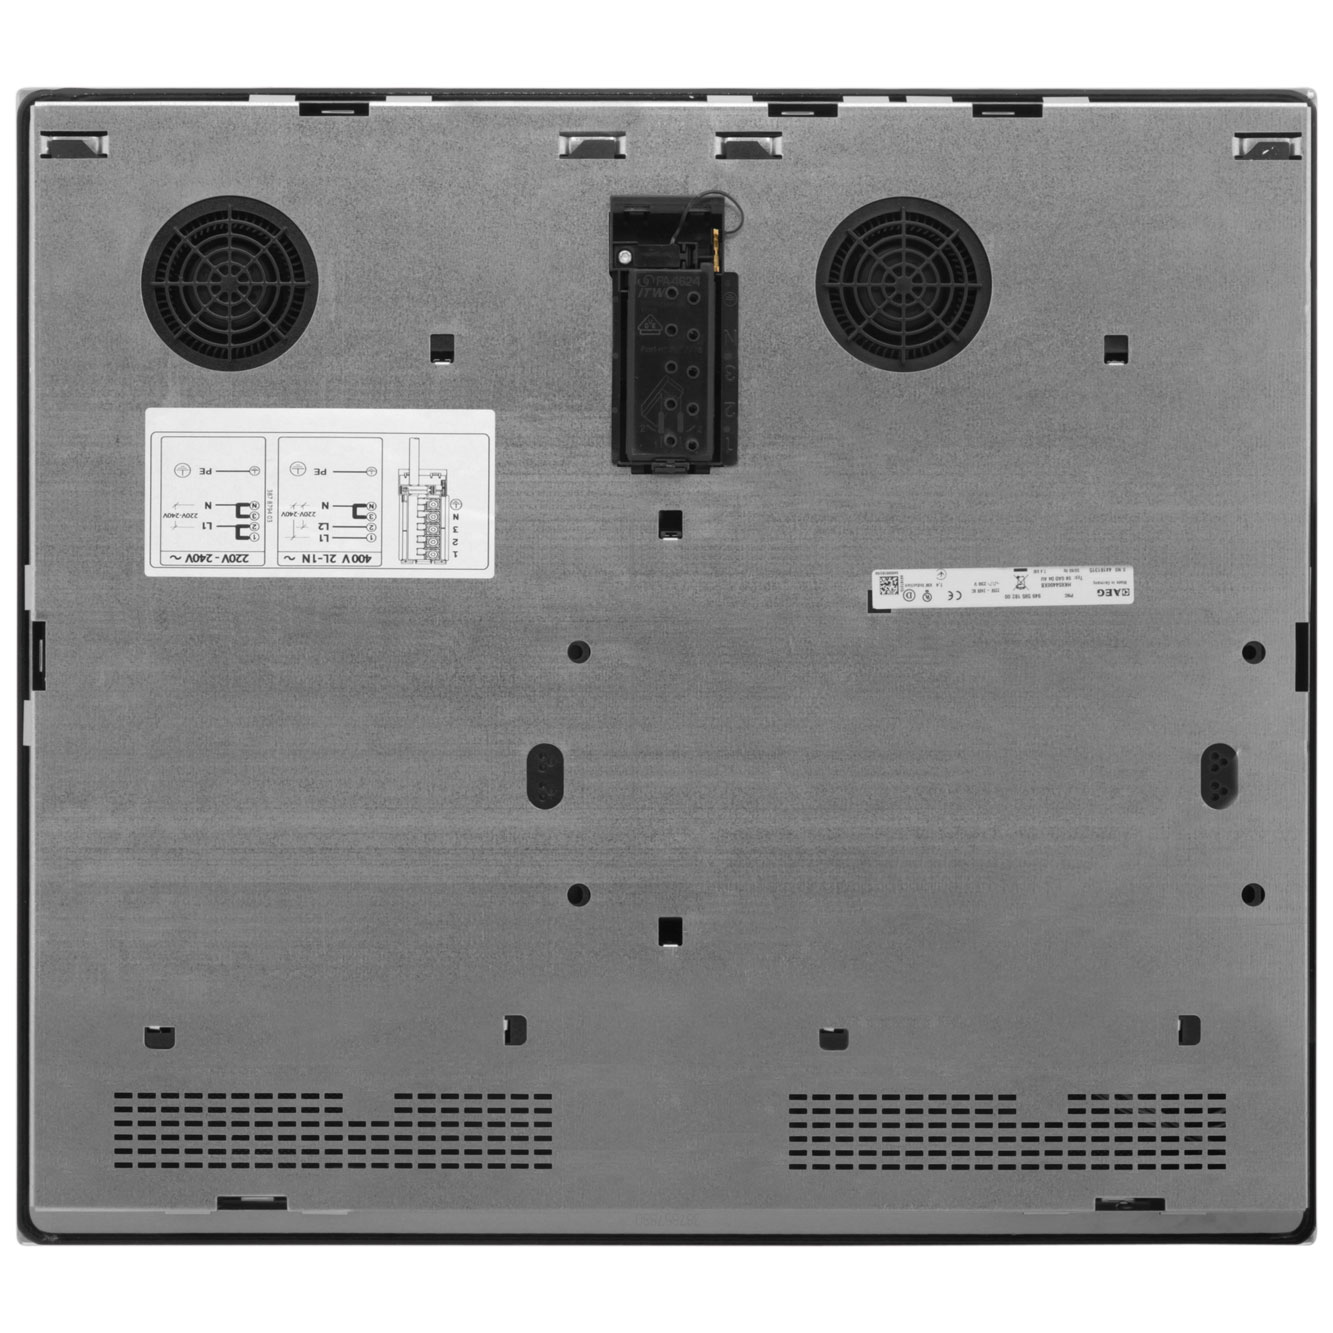 Wiring Diagram For Bosch Electric Hob : Induction hob electrical installation images buy